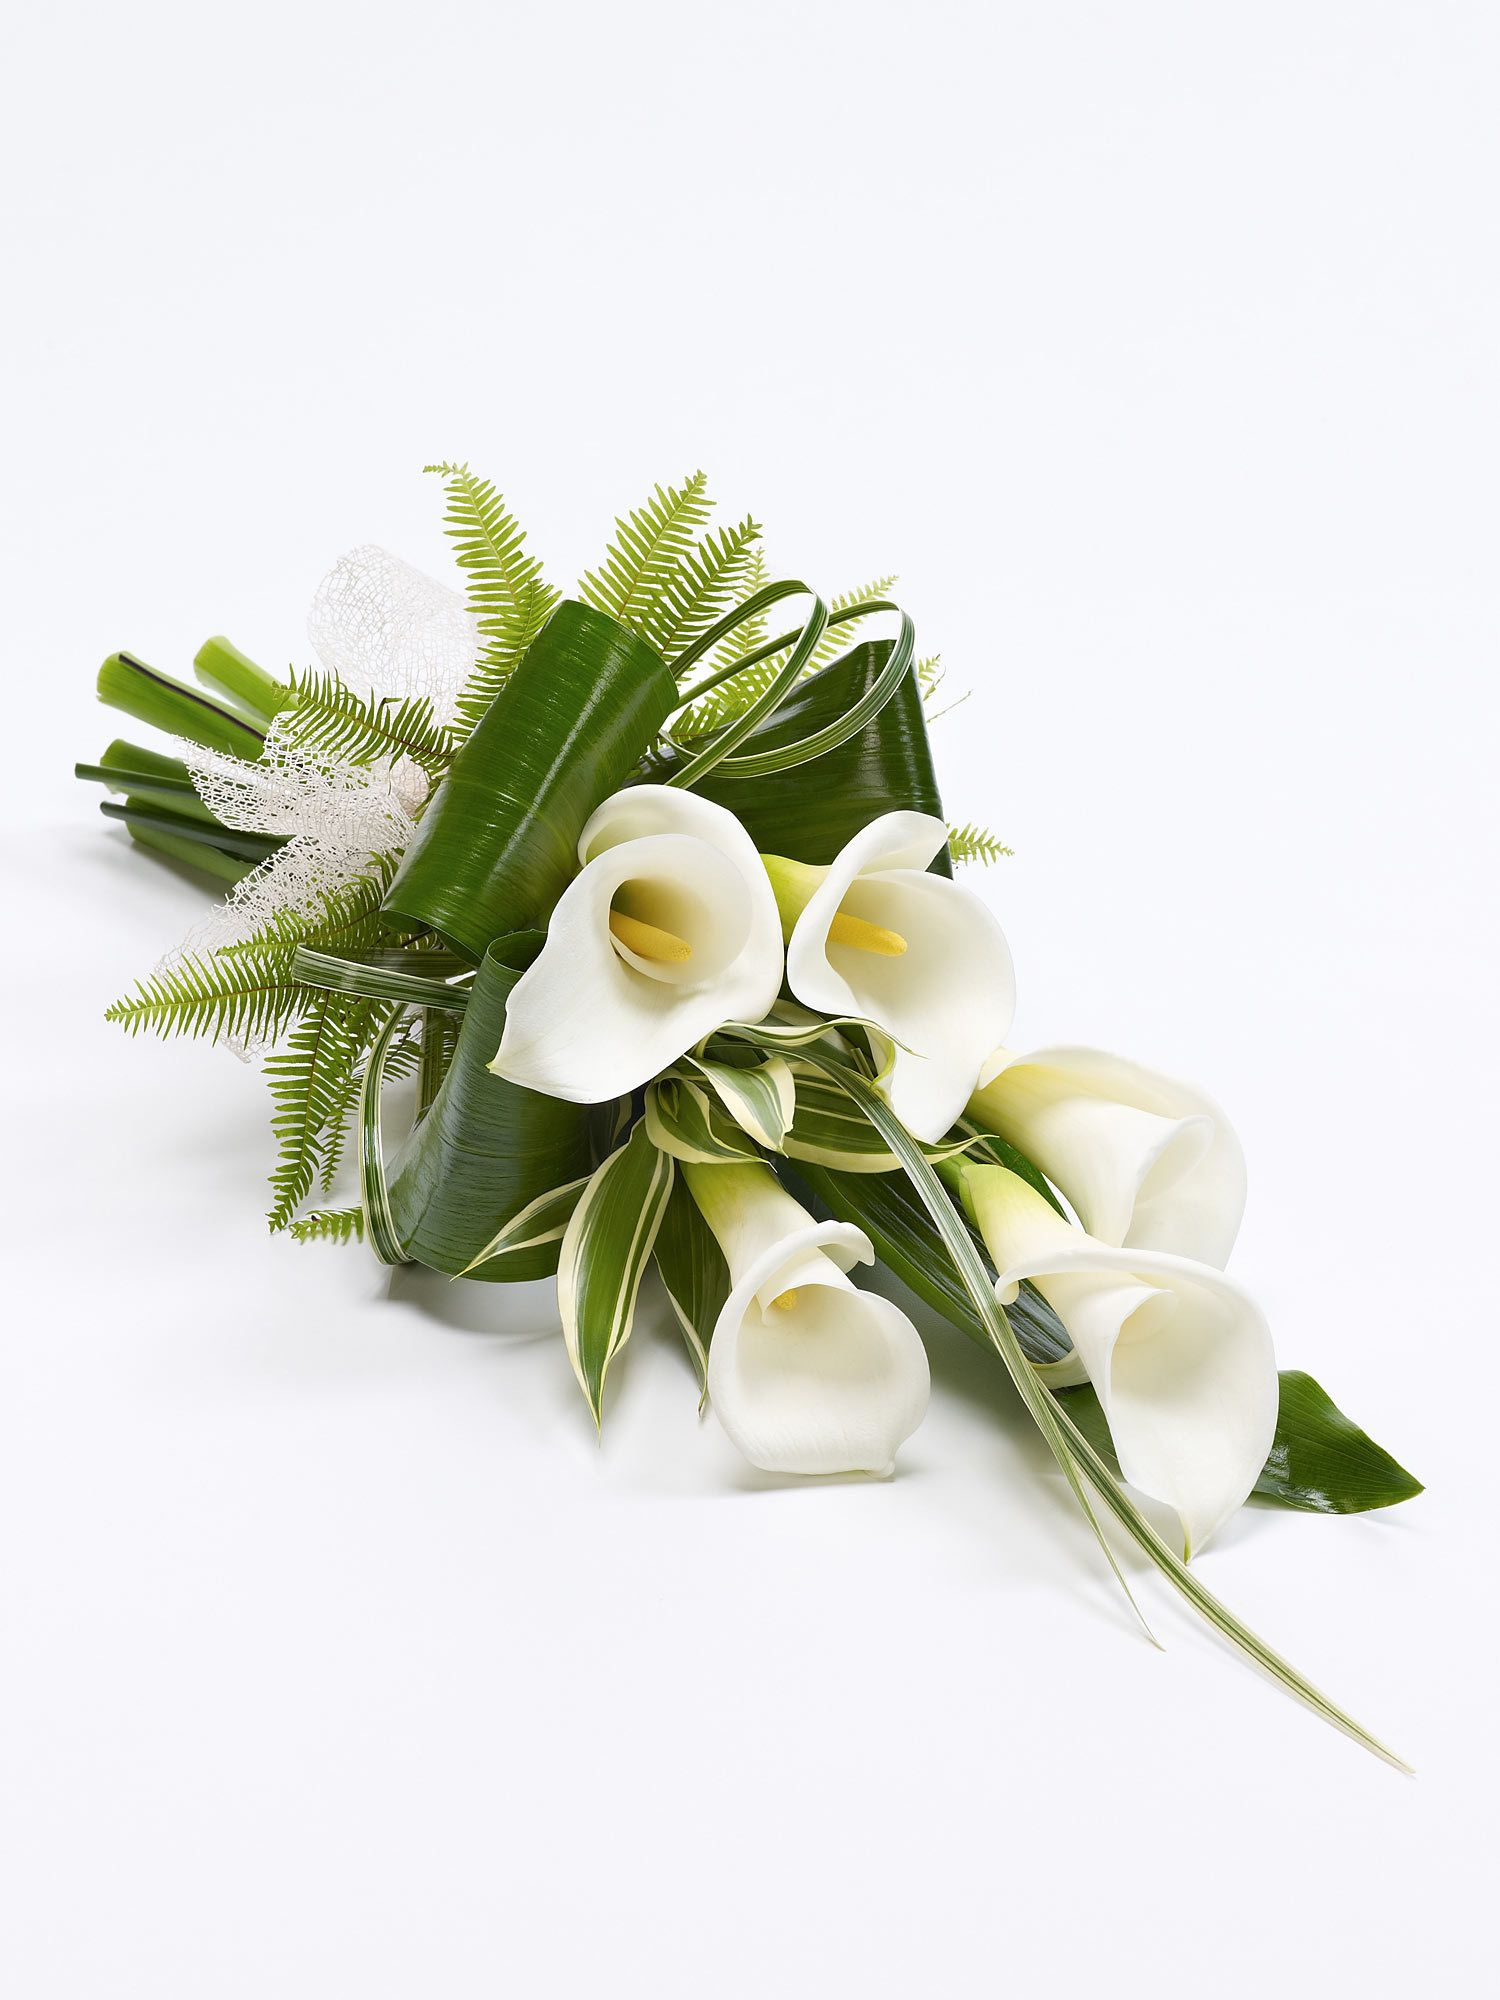 Calla lily sheaf interflora pinterest calla calla lily sheaf white classic white calla lily tied with a natural ribbon are complemented by folded aspidistra leaves and dracaena to create this c izmirmasajfo